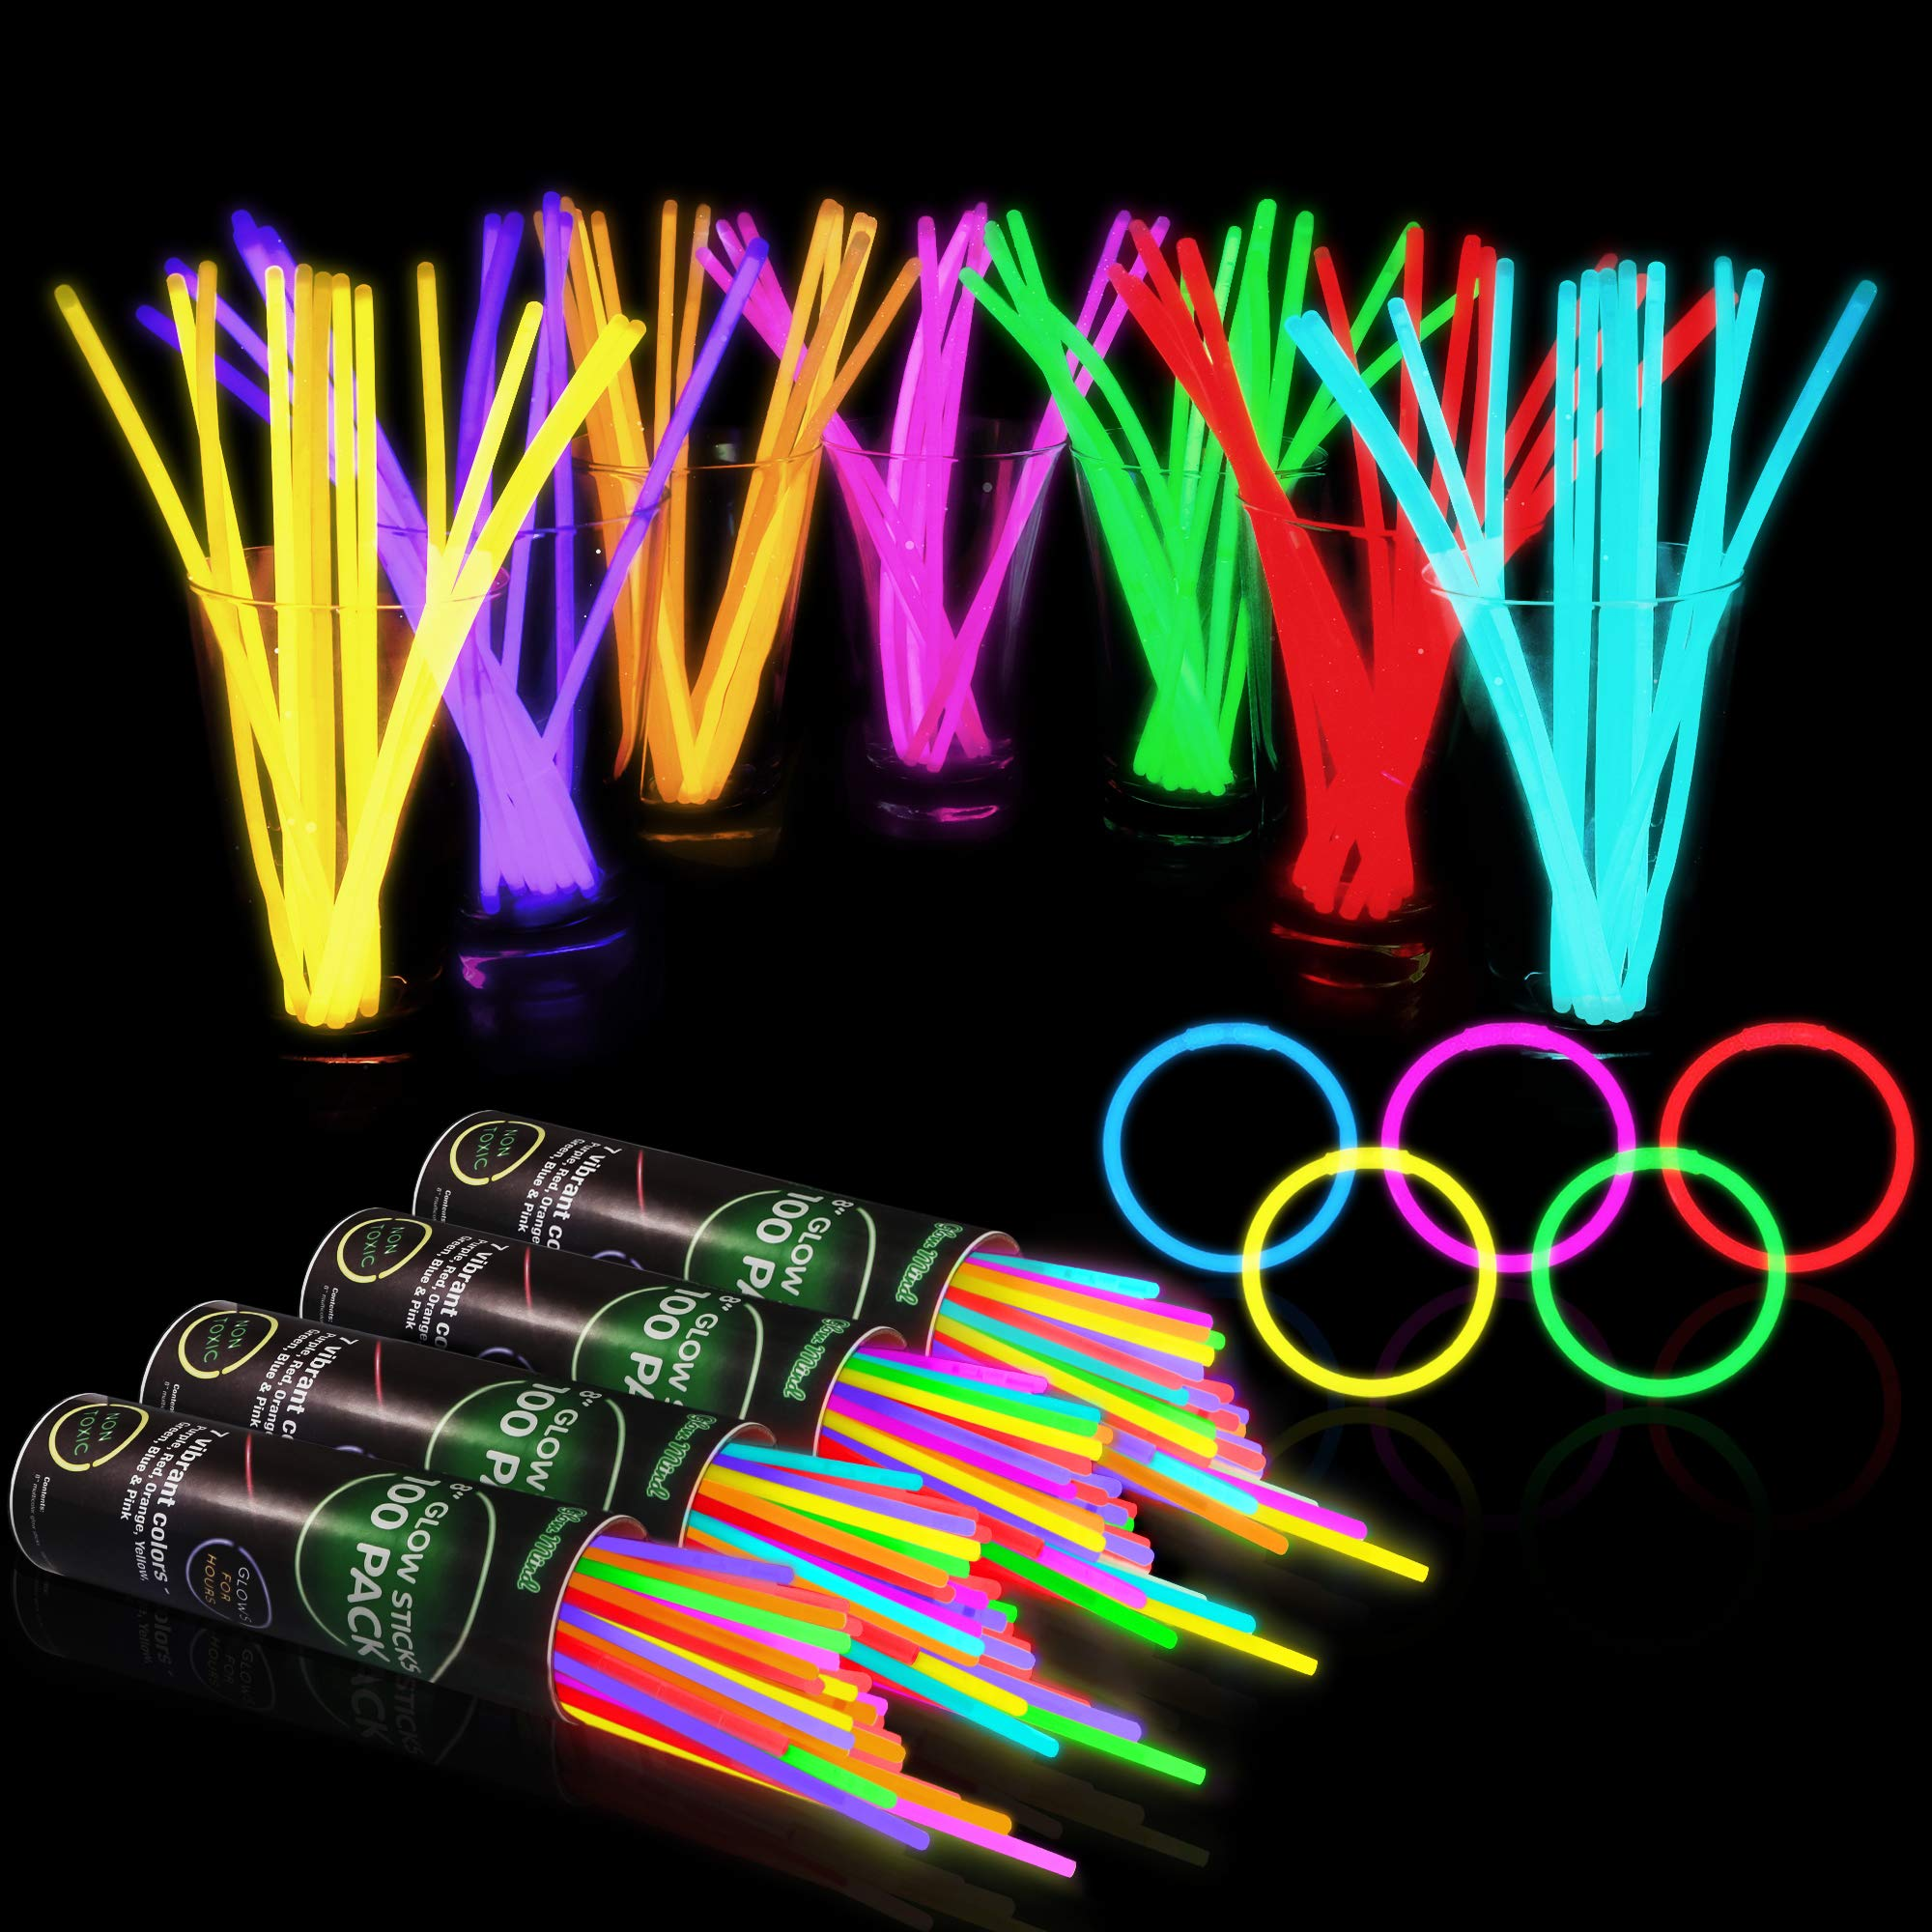 400 Glow Sticks Bulk Party Supplies - Glow in The Dark Fun Party Pack with 8'' Glowsticks and Connectors for Bracelets and Necklaces for Kids and Adults